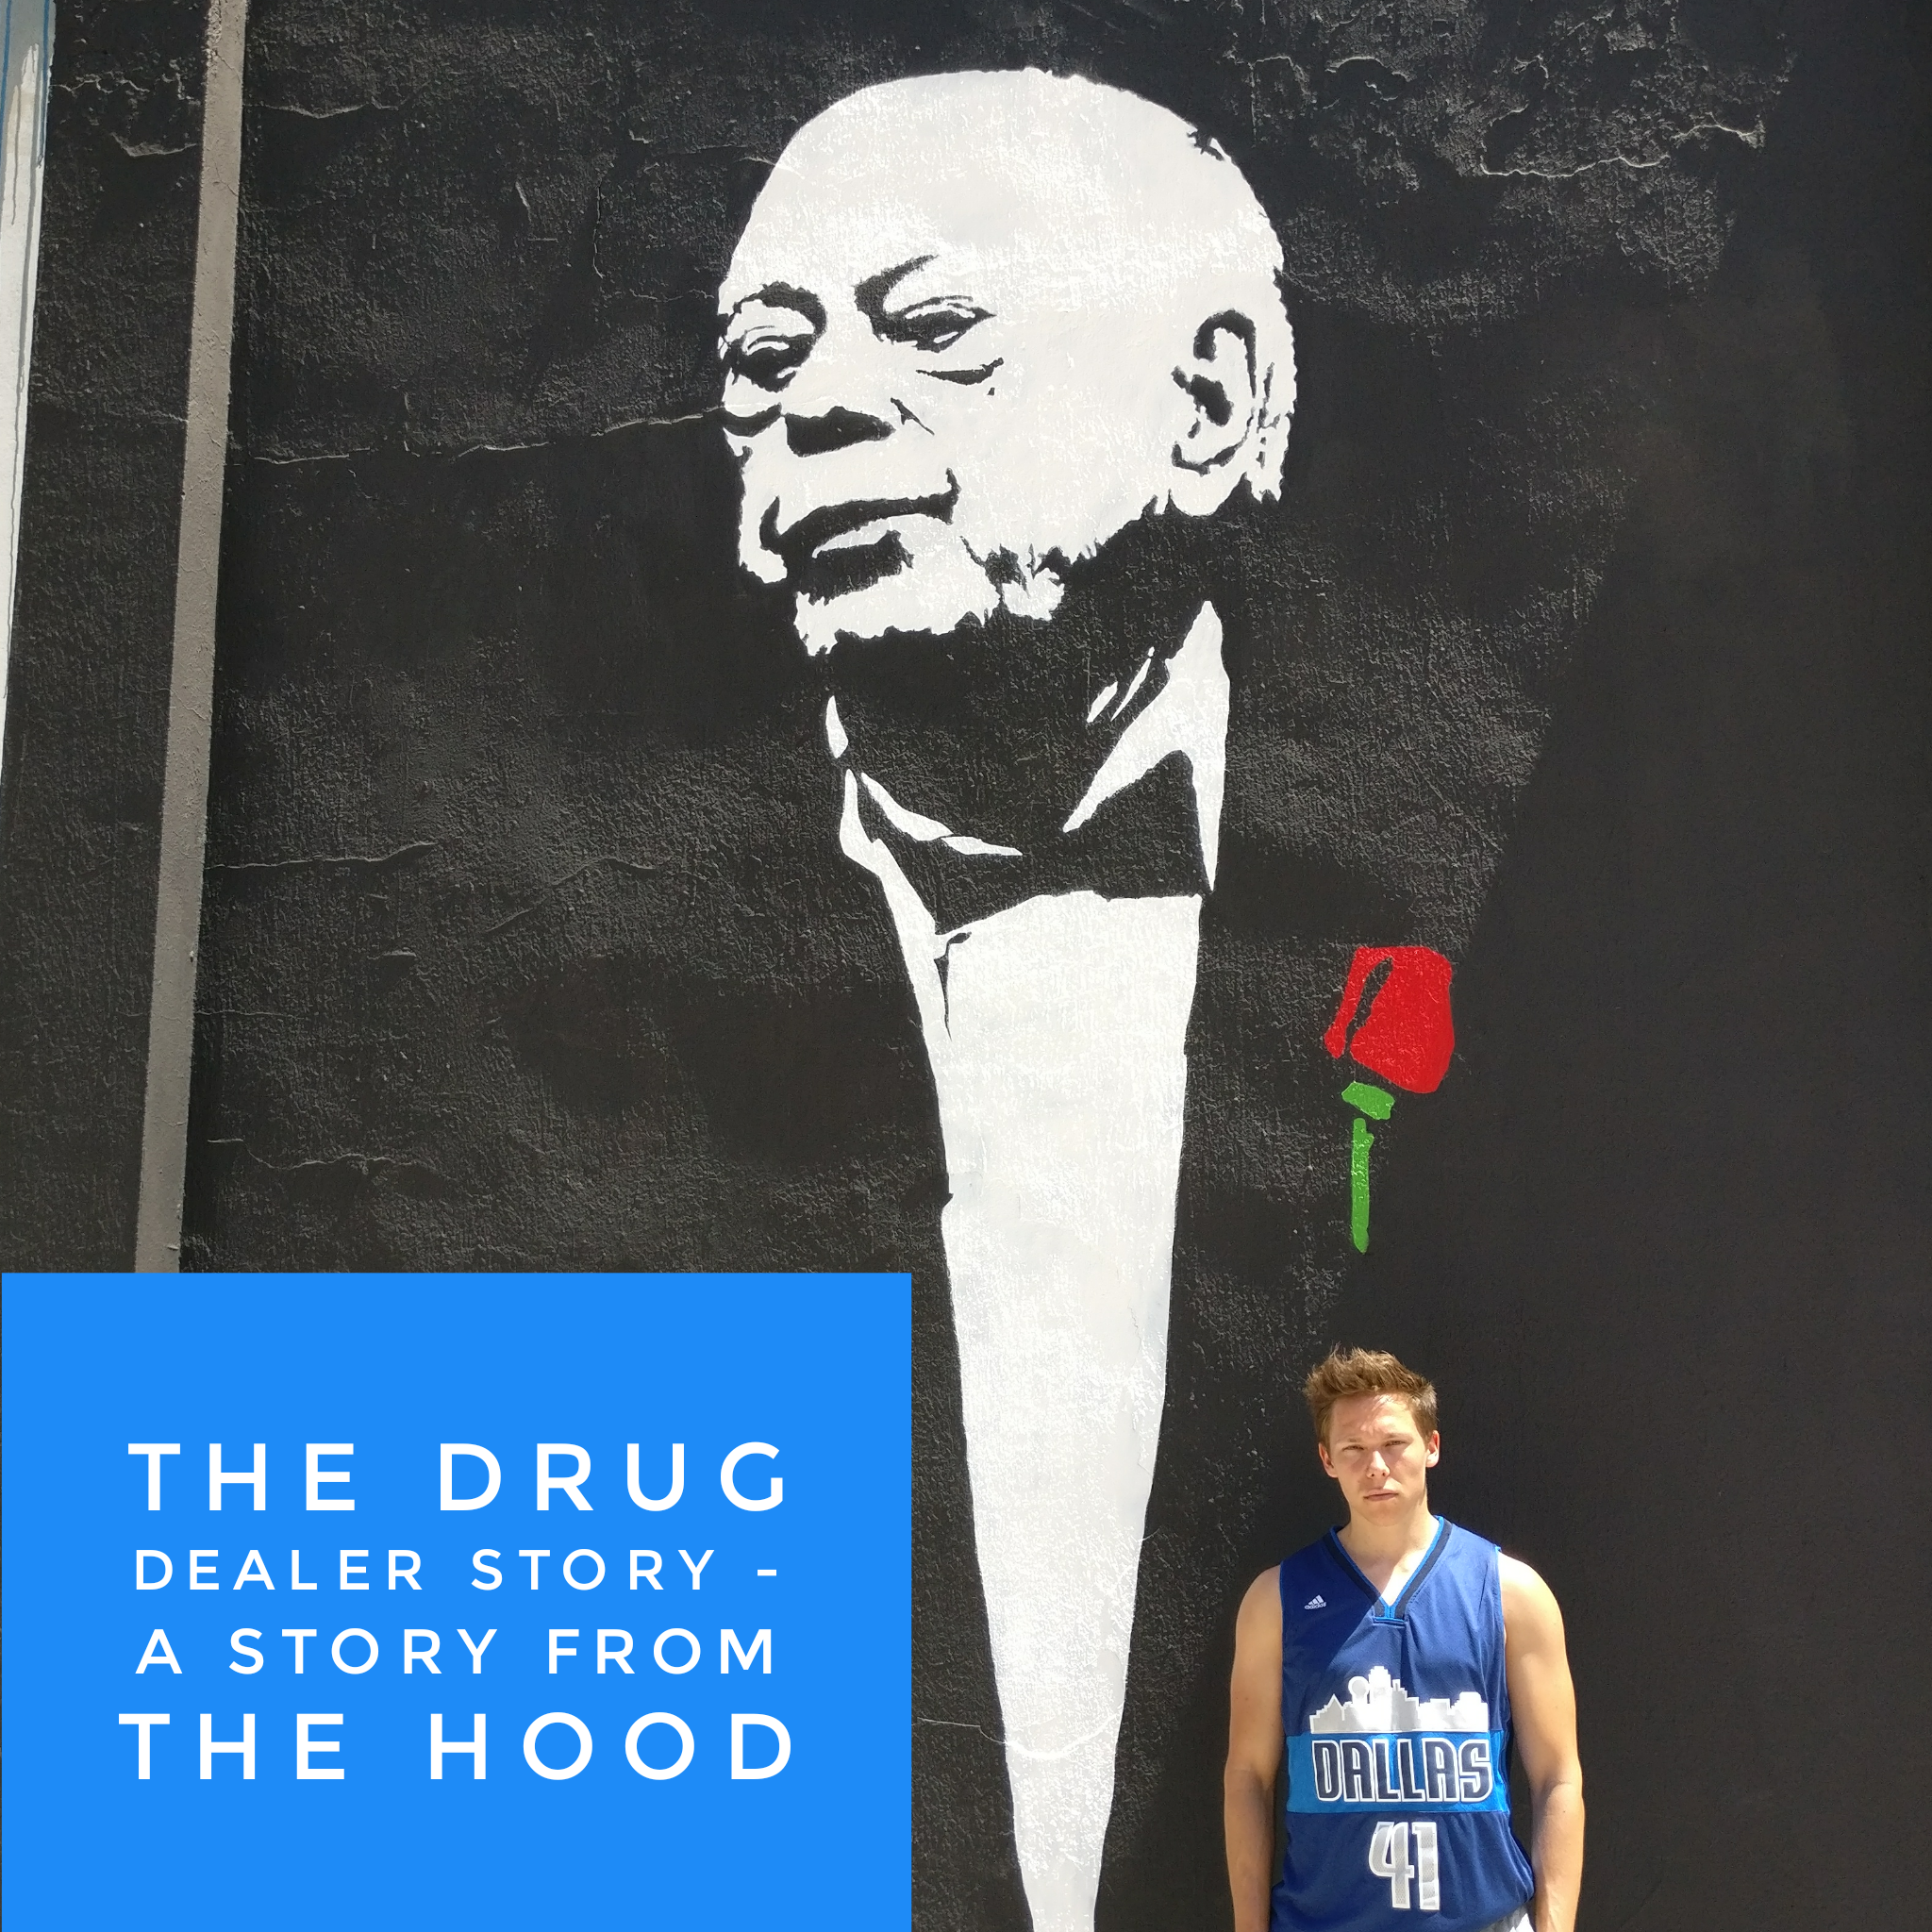 The drug dealer story – a story from the hood